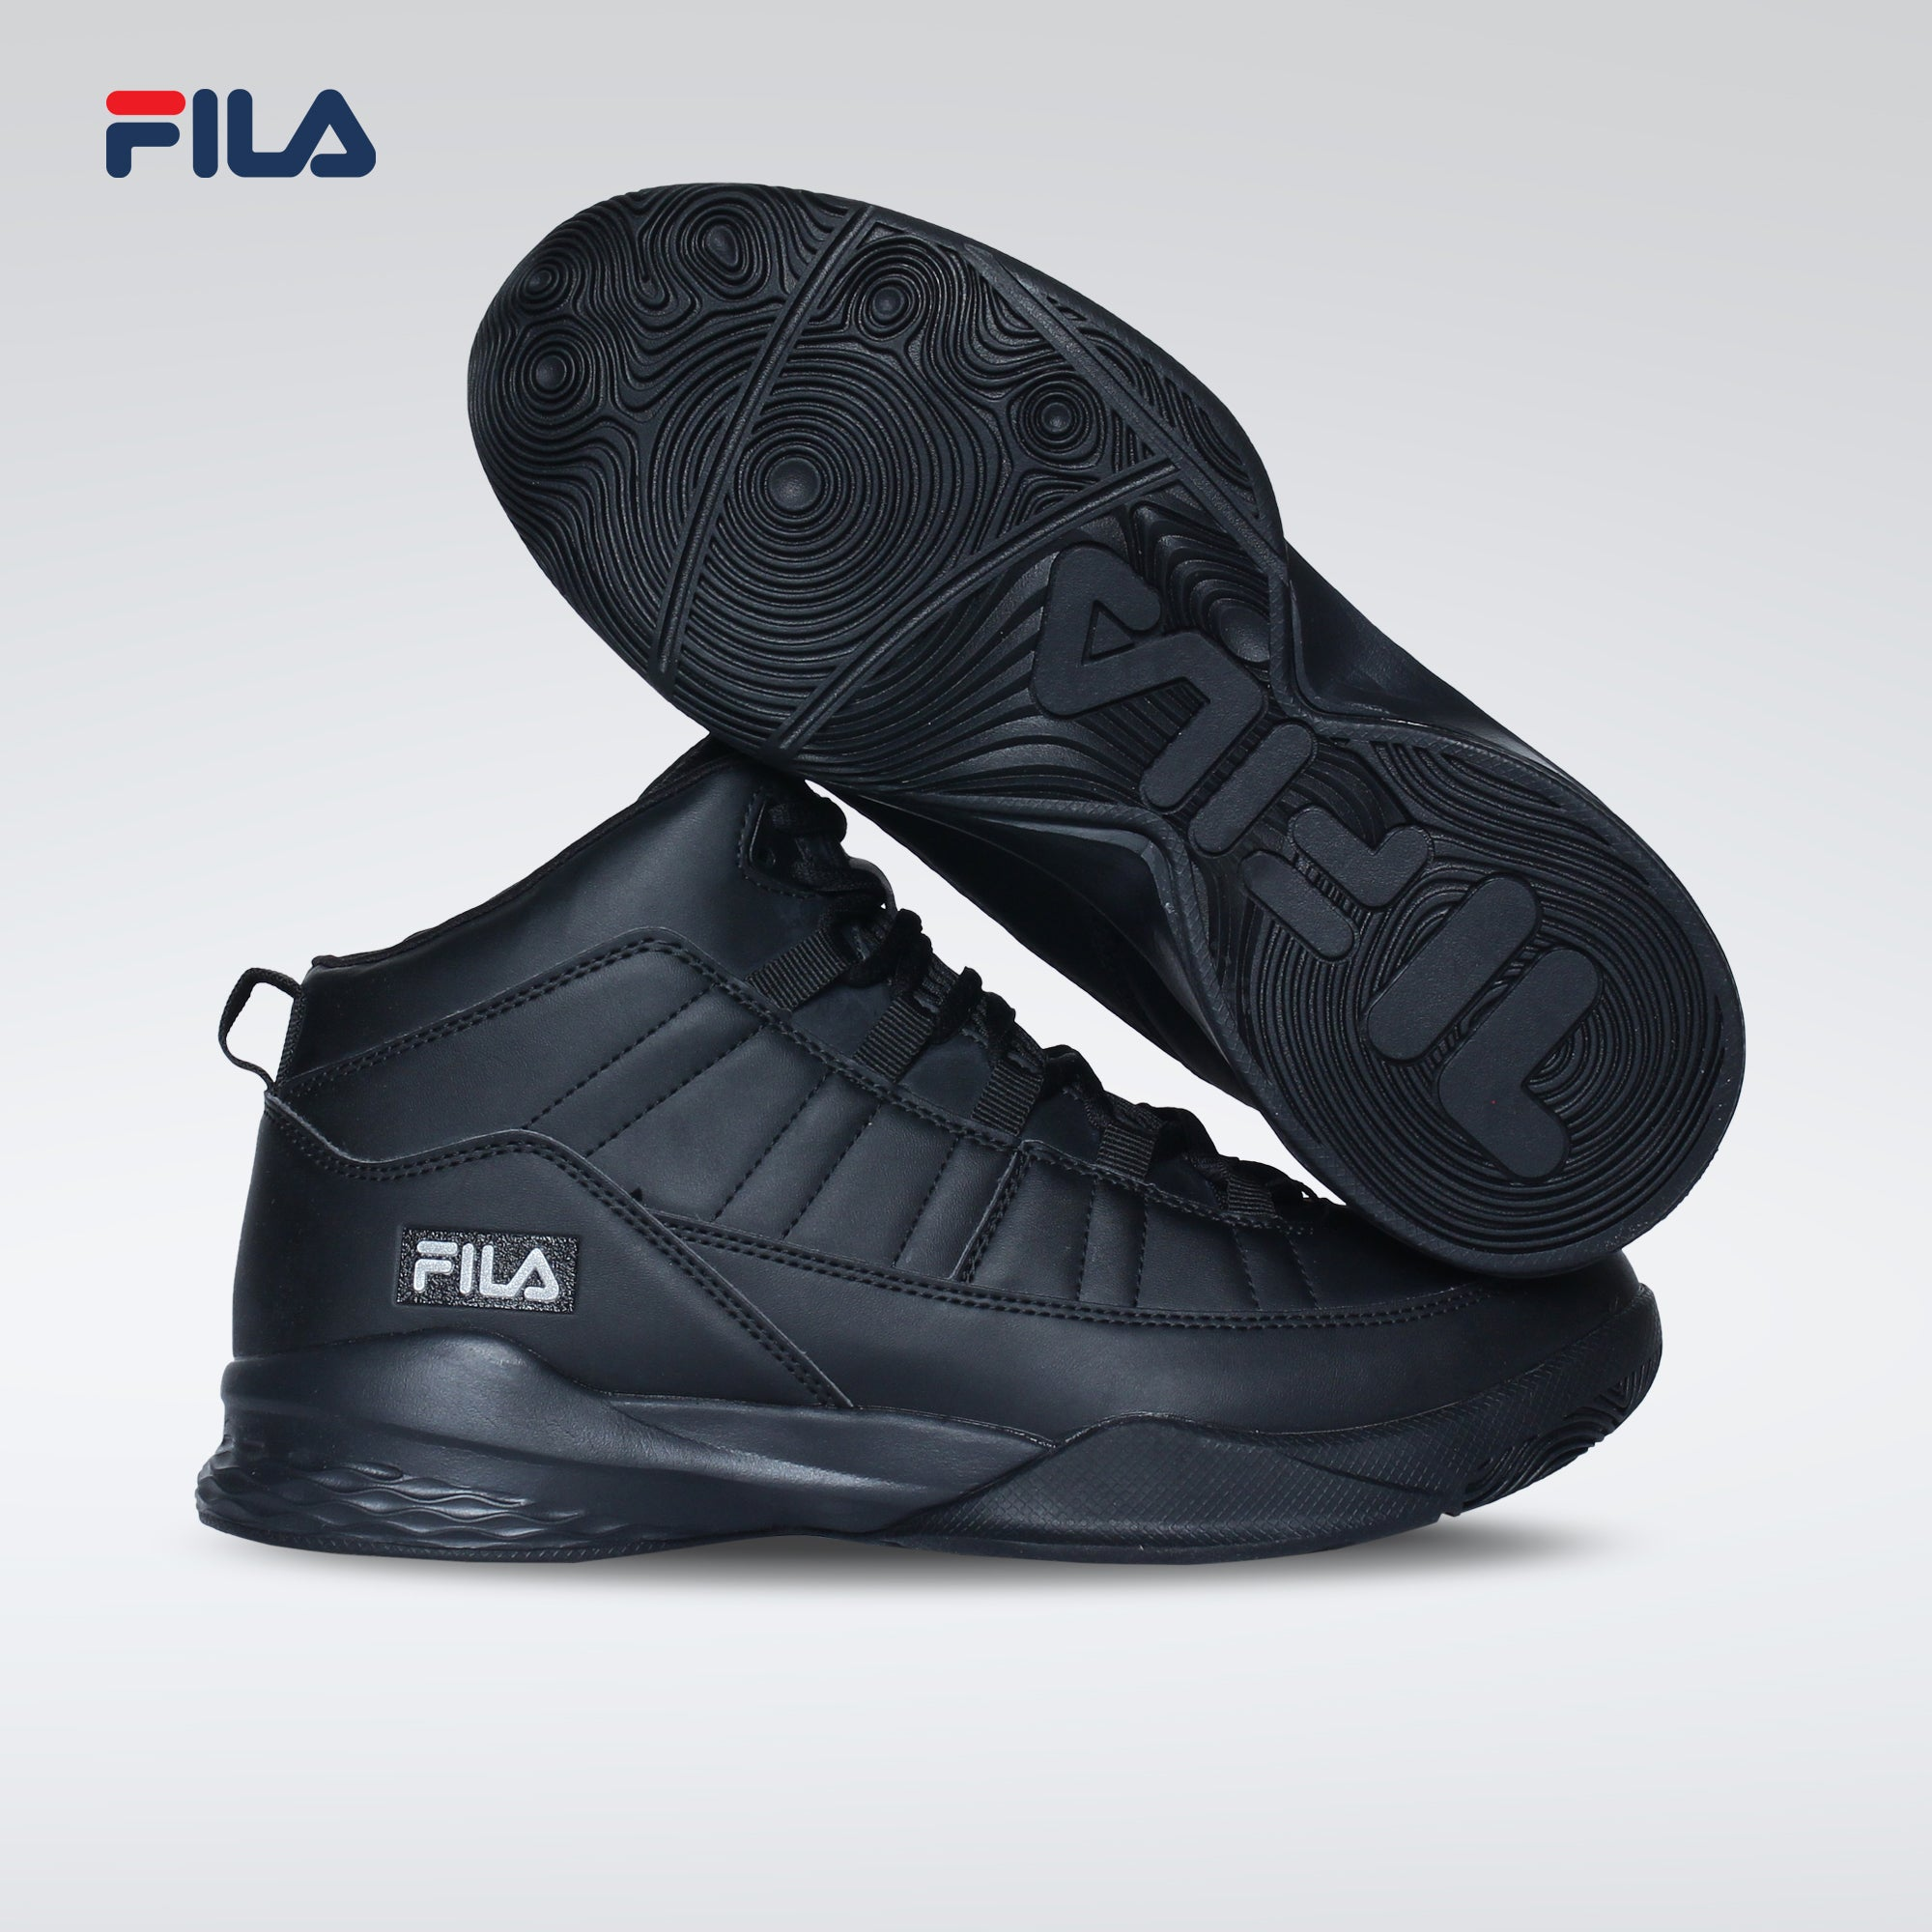 Fila Men's Glide Baller One